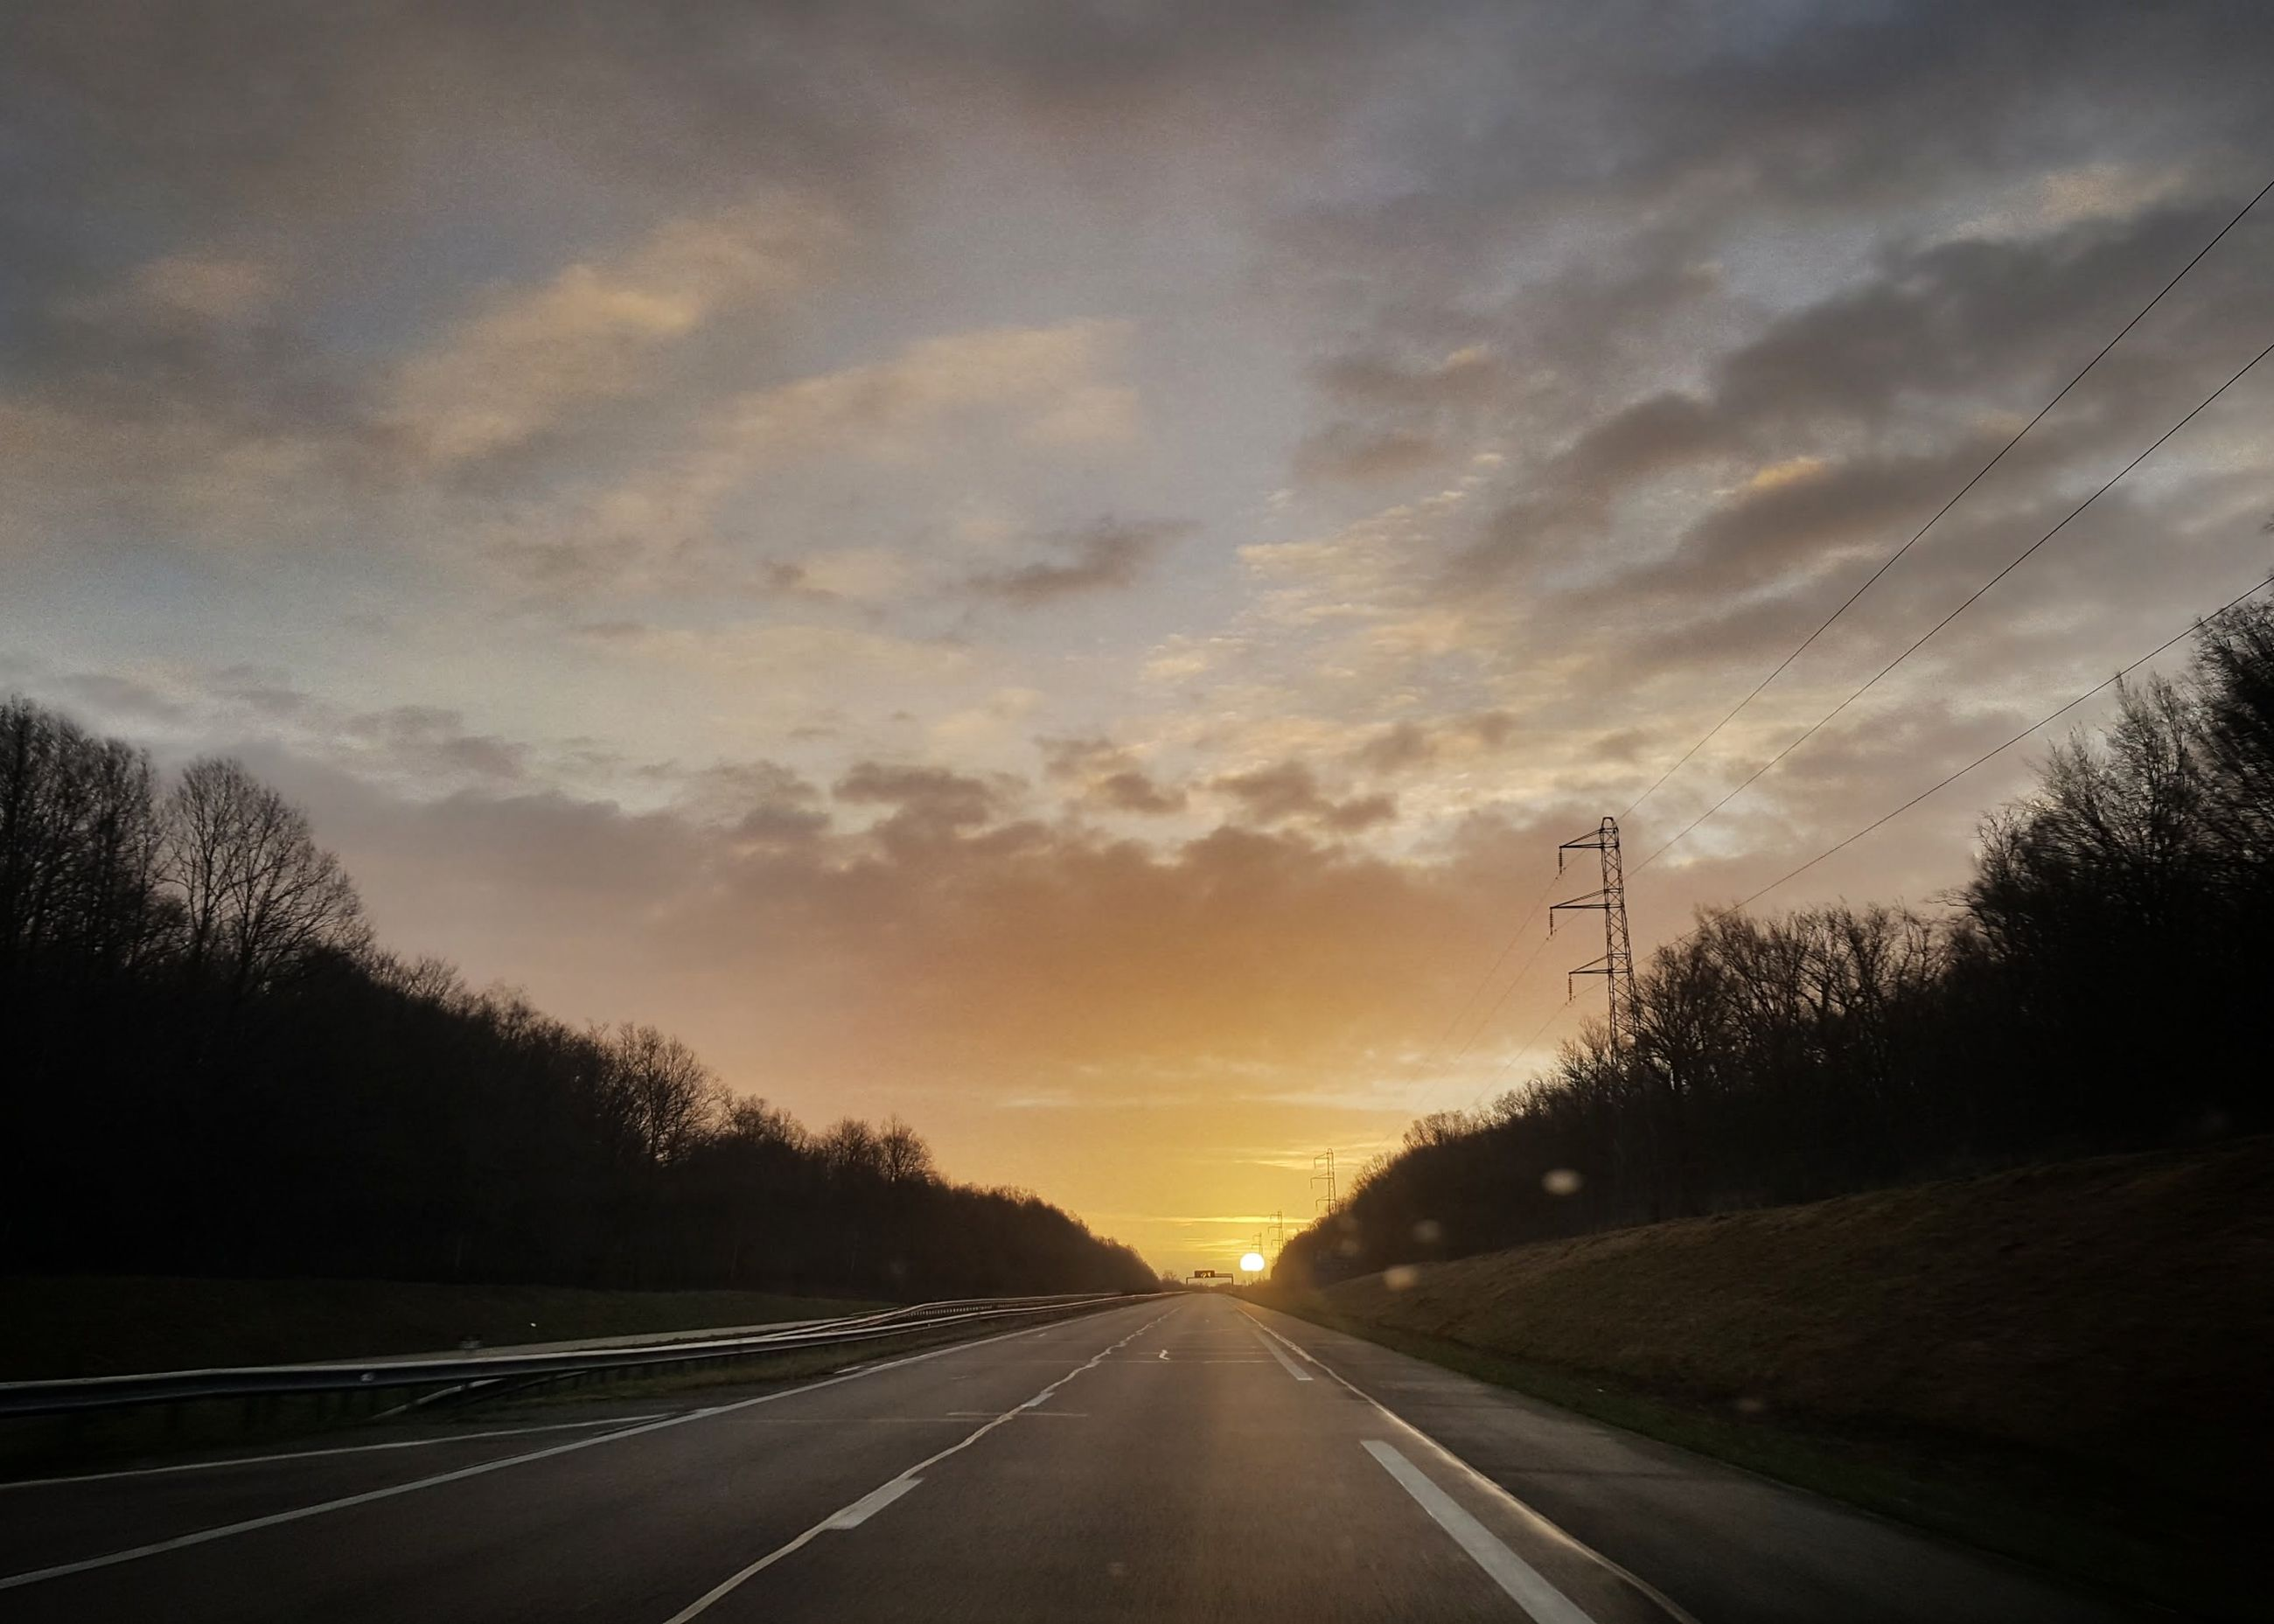 road, the way forward, transportation, road marking, sunset, sky, no people, cloud - sky, tranquility, tranquil scene, nature, tree, silhouette, scenics, dividing line, outdoors, landscape, beauty in nature, day